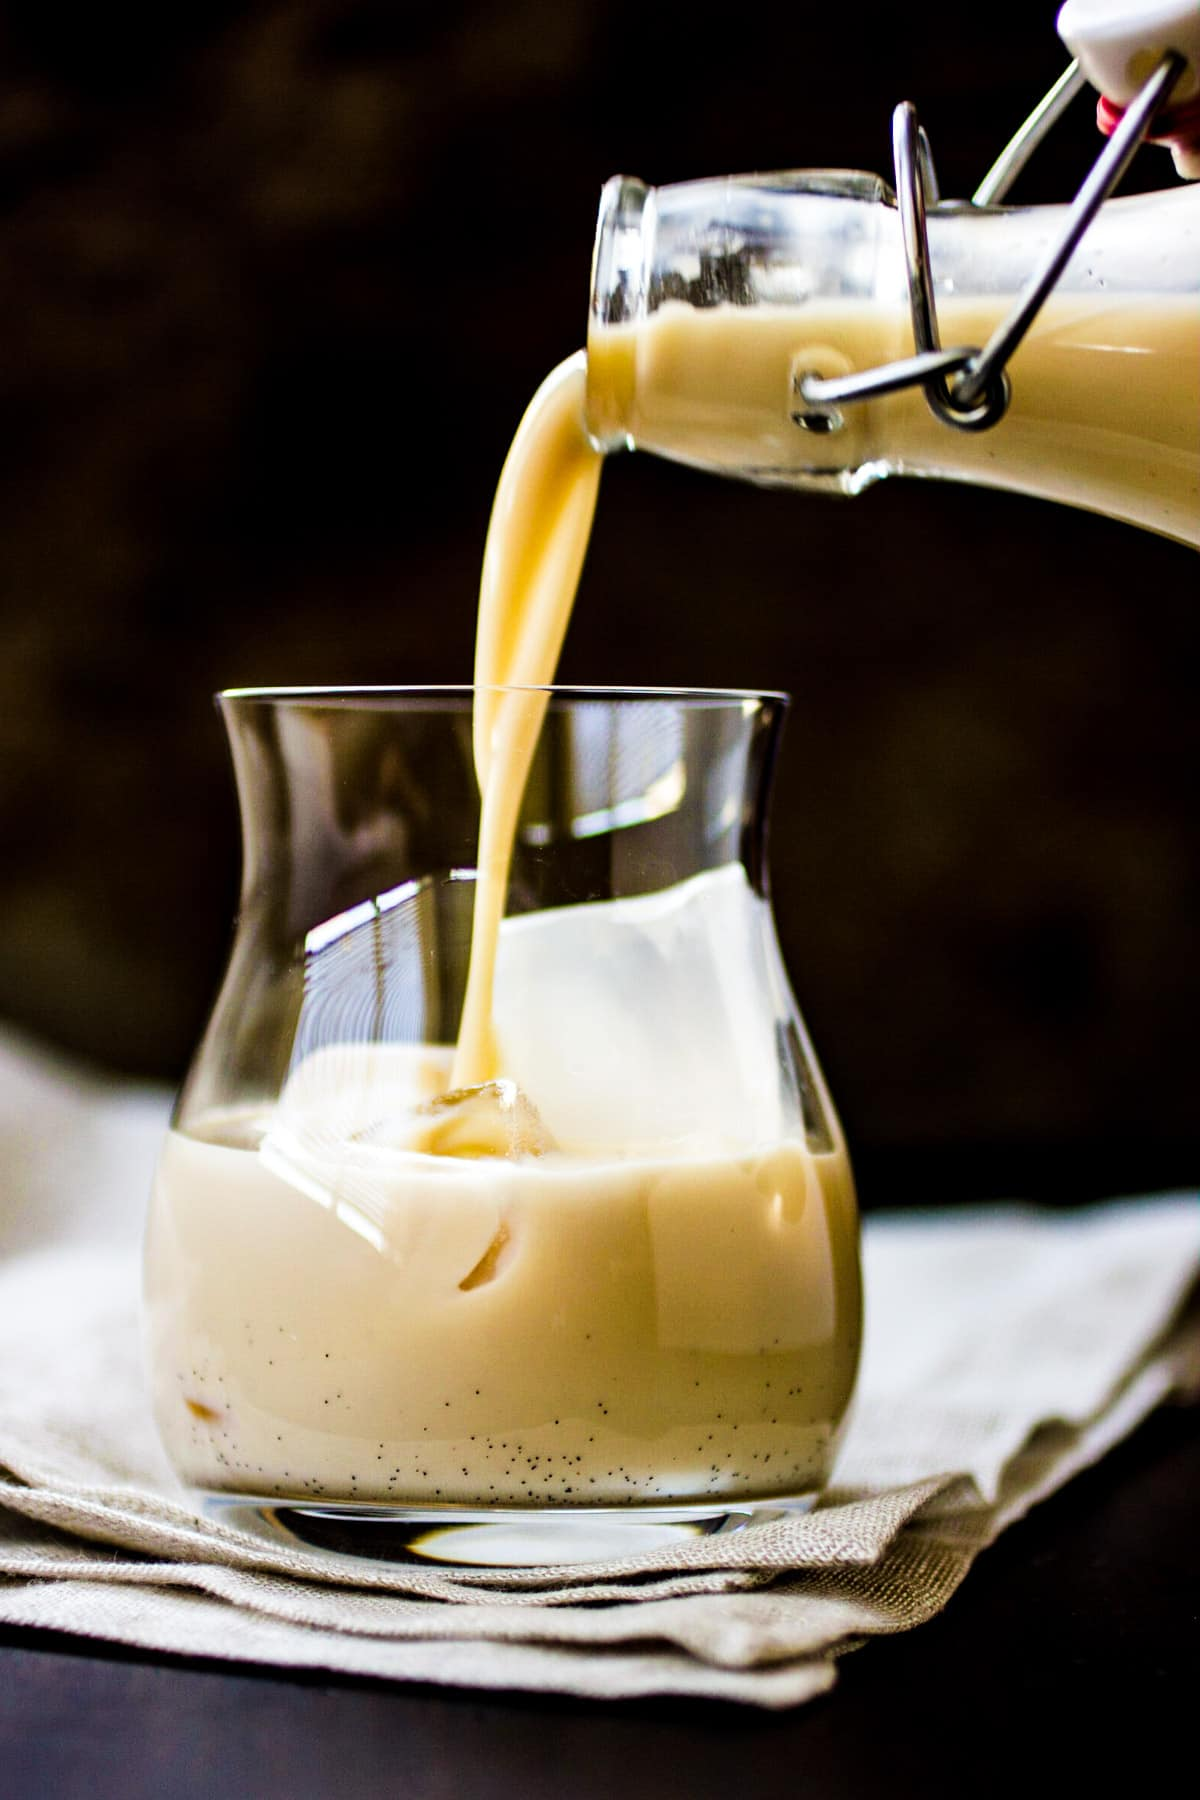 Homemade Irish Cream Liqueur being poured